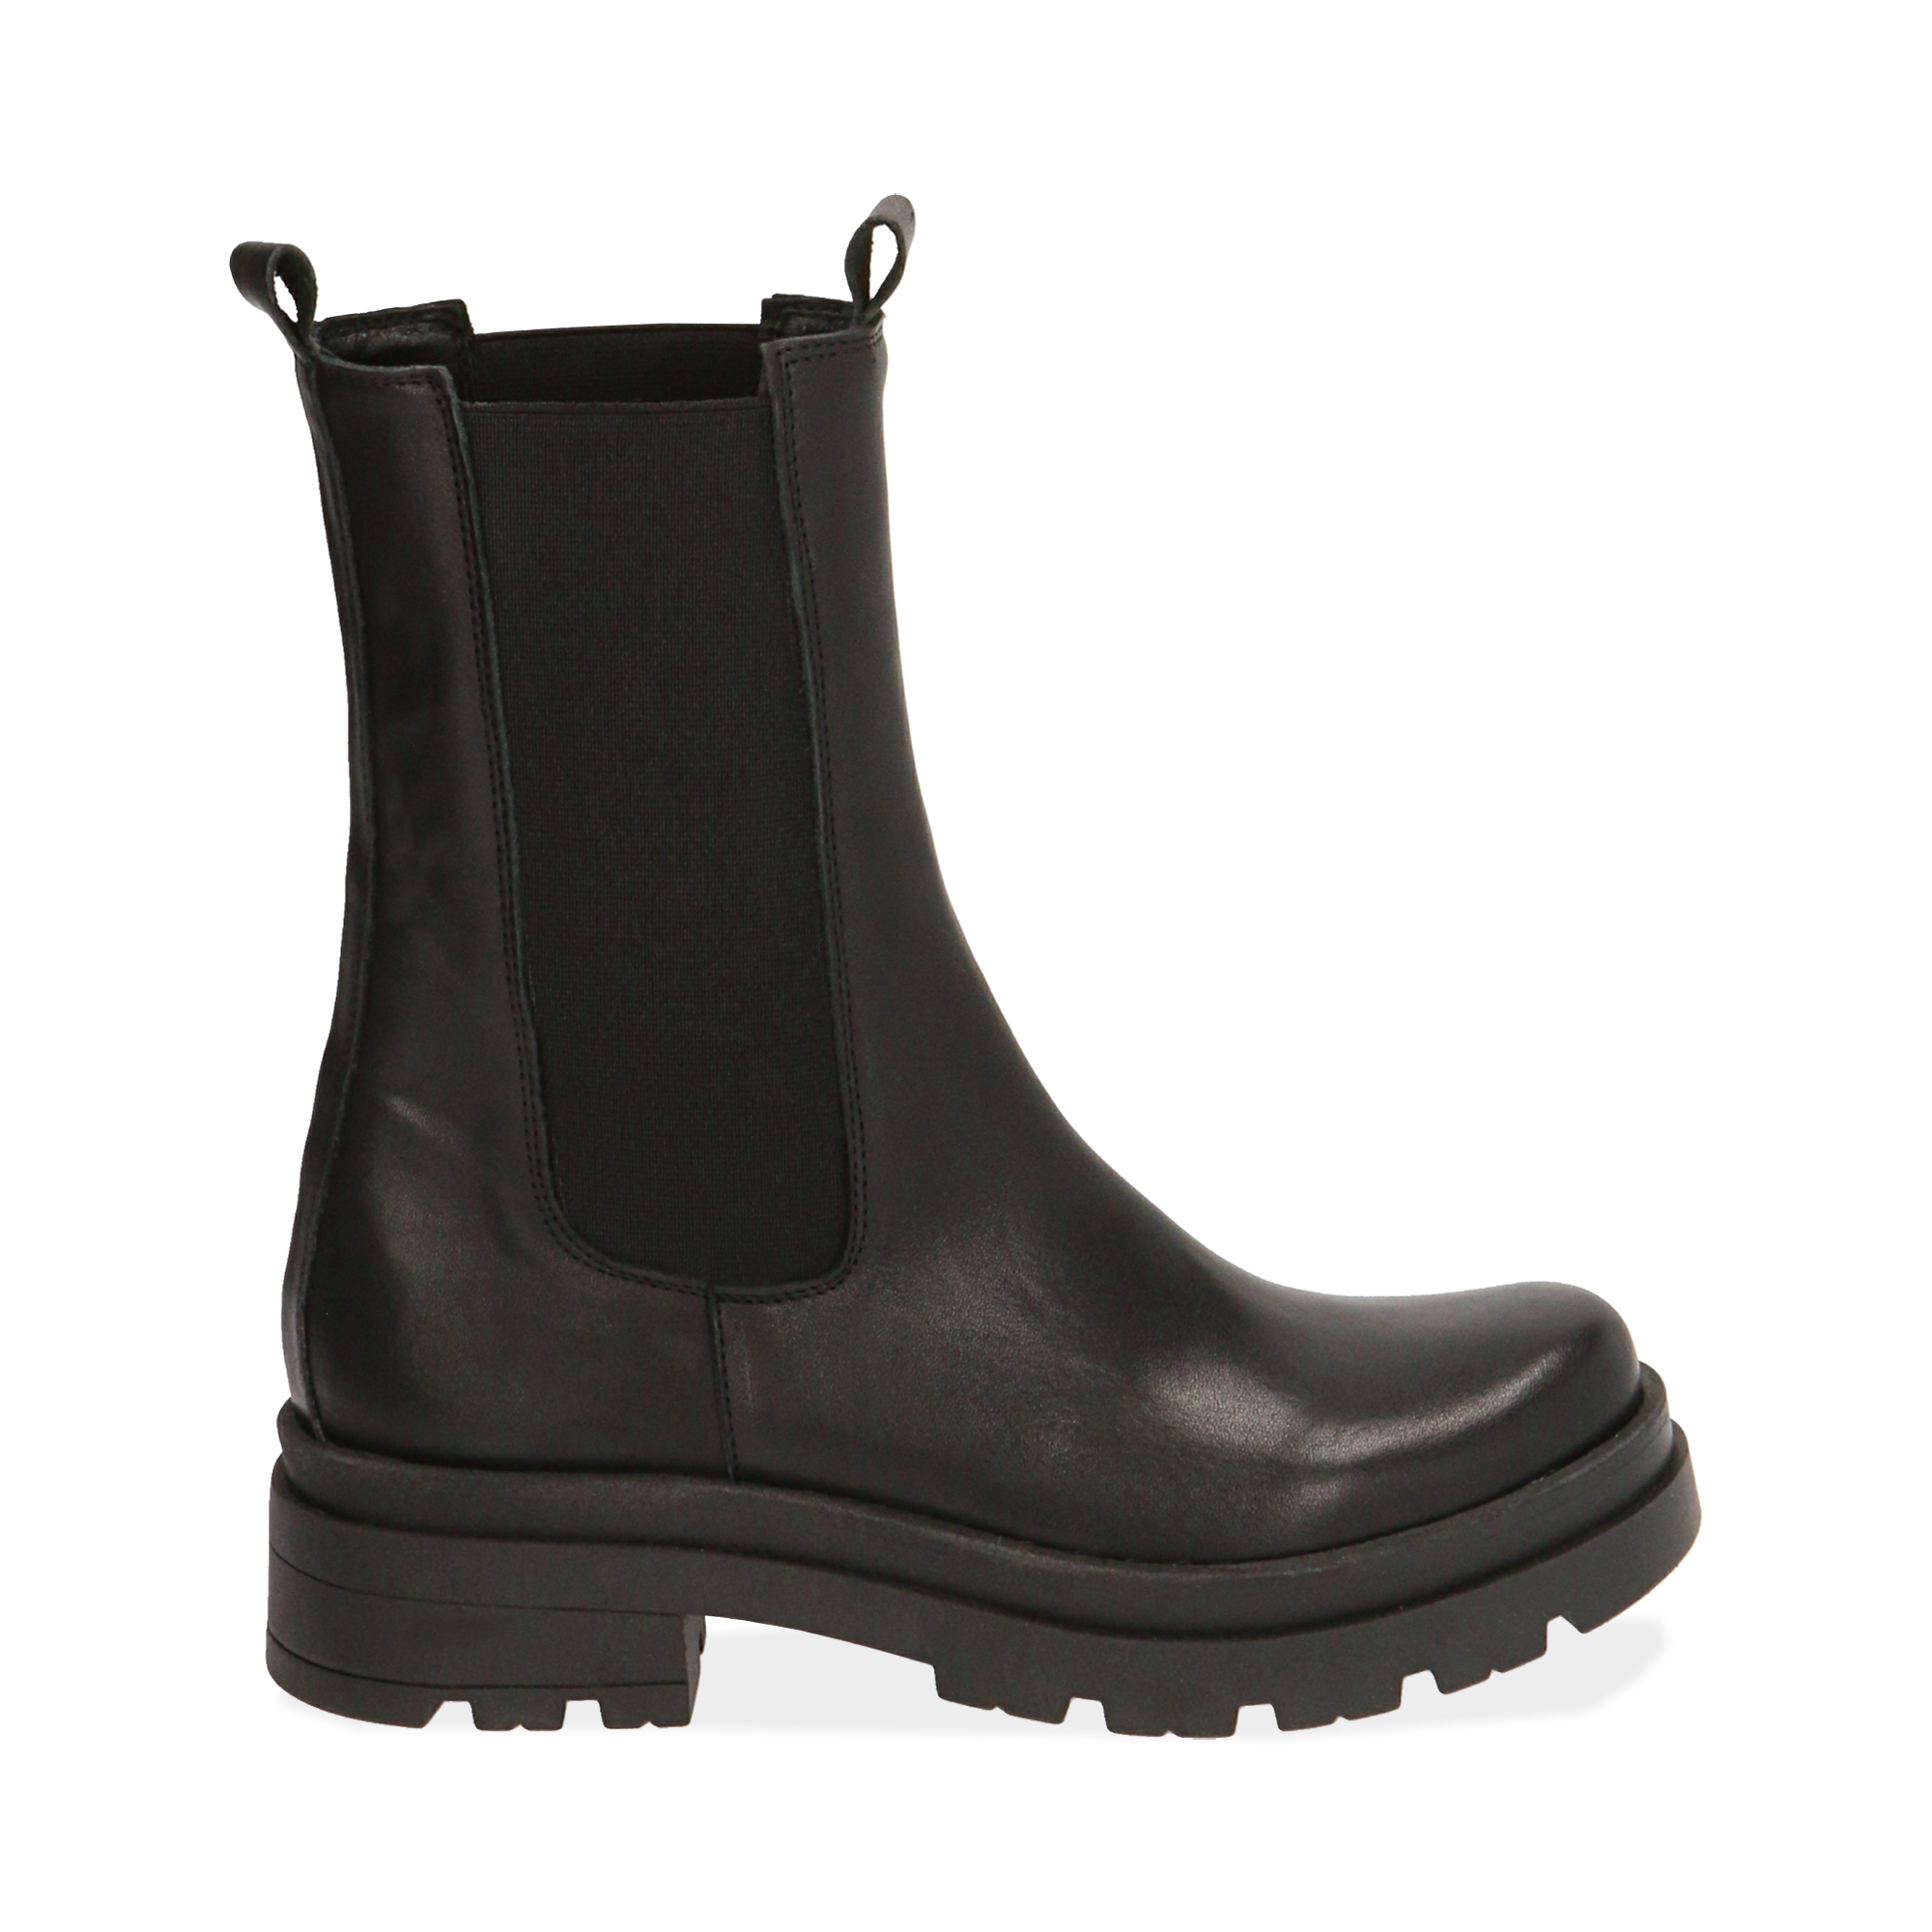 Chelsea boots neri in pelle, tacco 5 cm